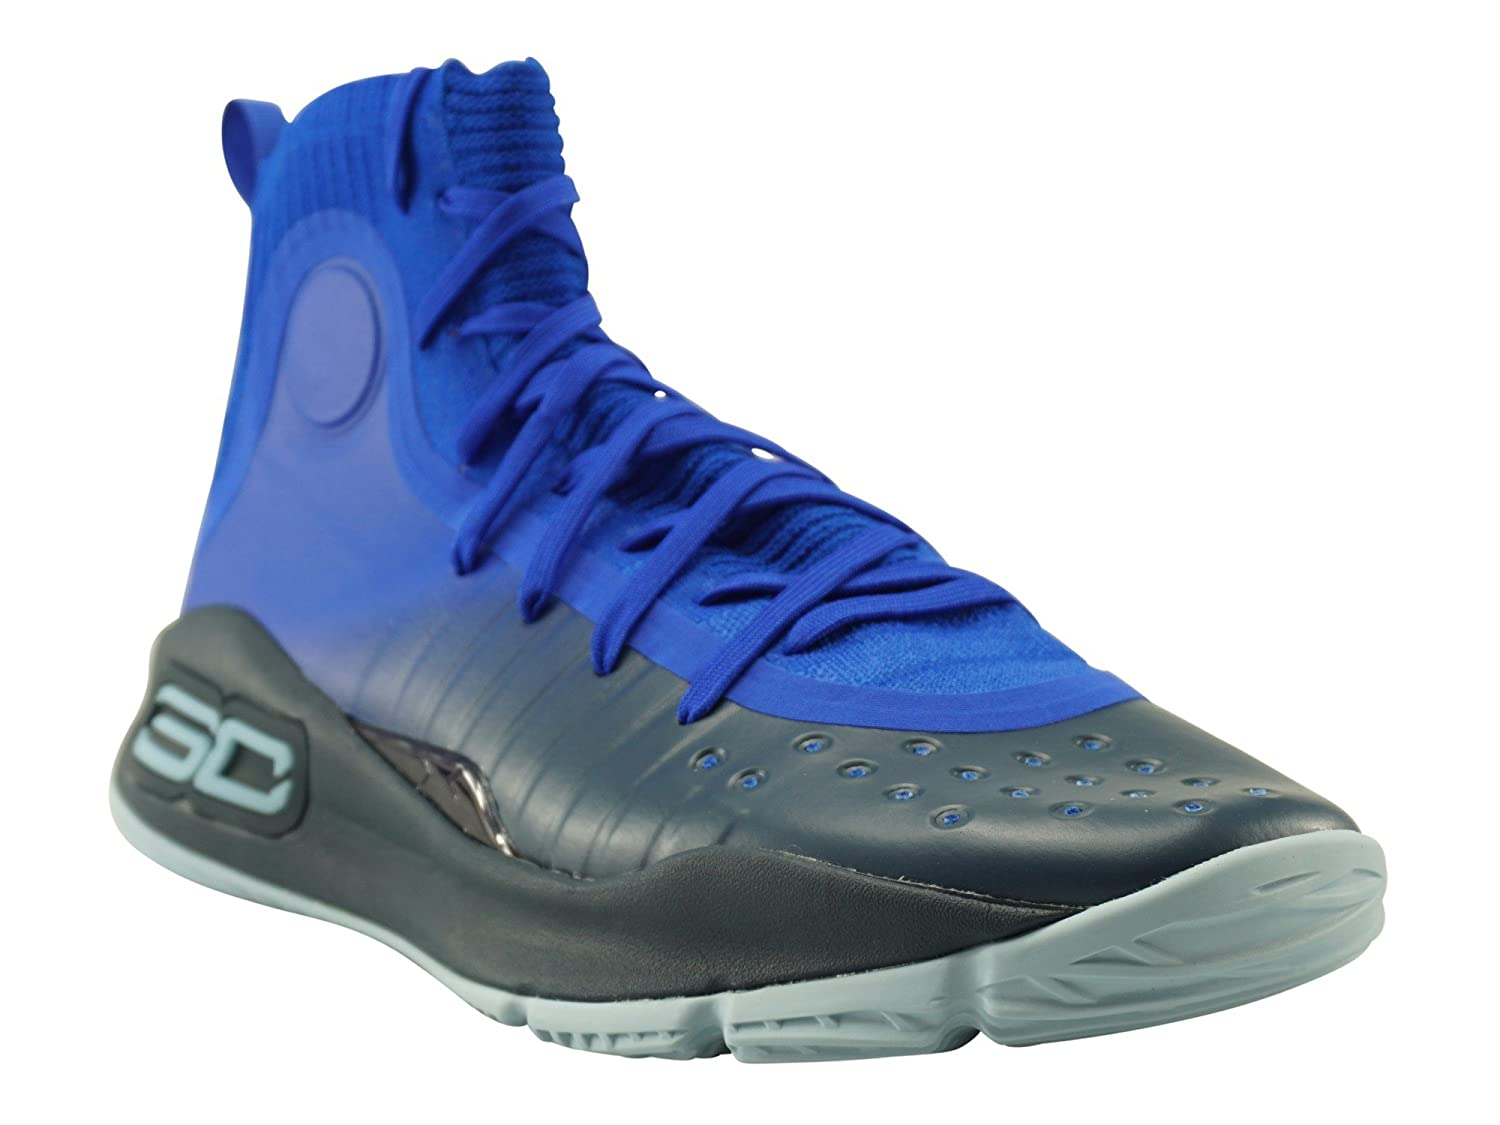 new concept 151d3 ed16c Amazon.com | Under Armour Curry 4 Mid Basketball Shoes (Kids) | Shoes